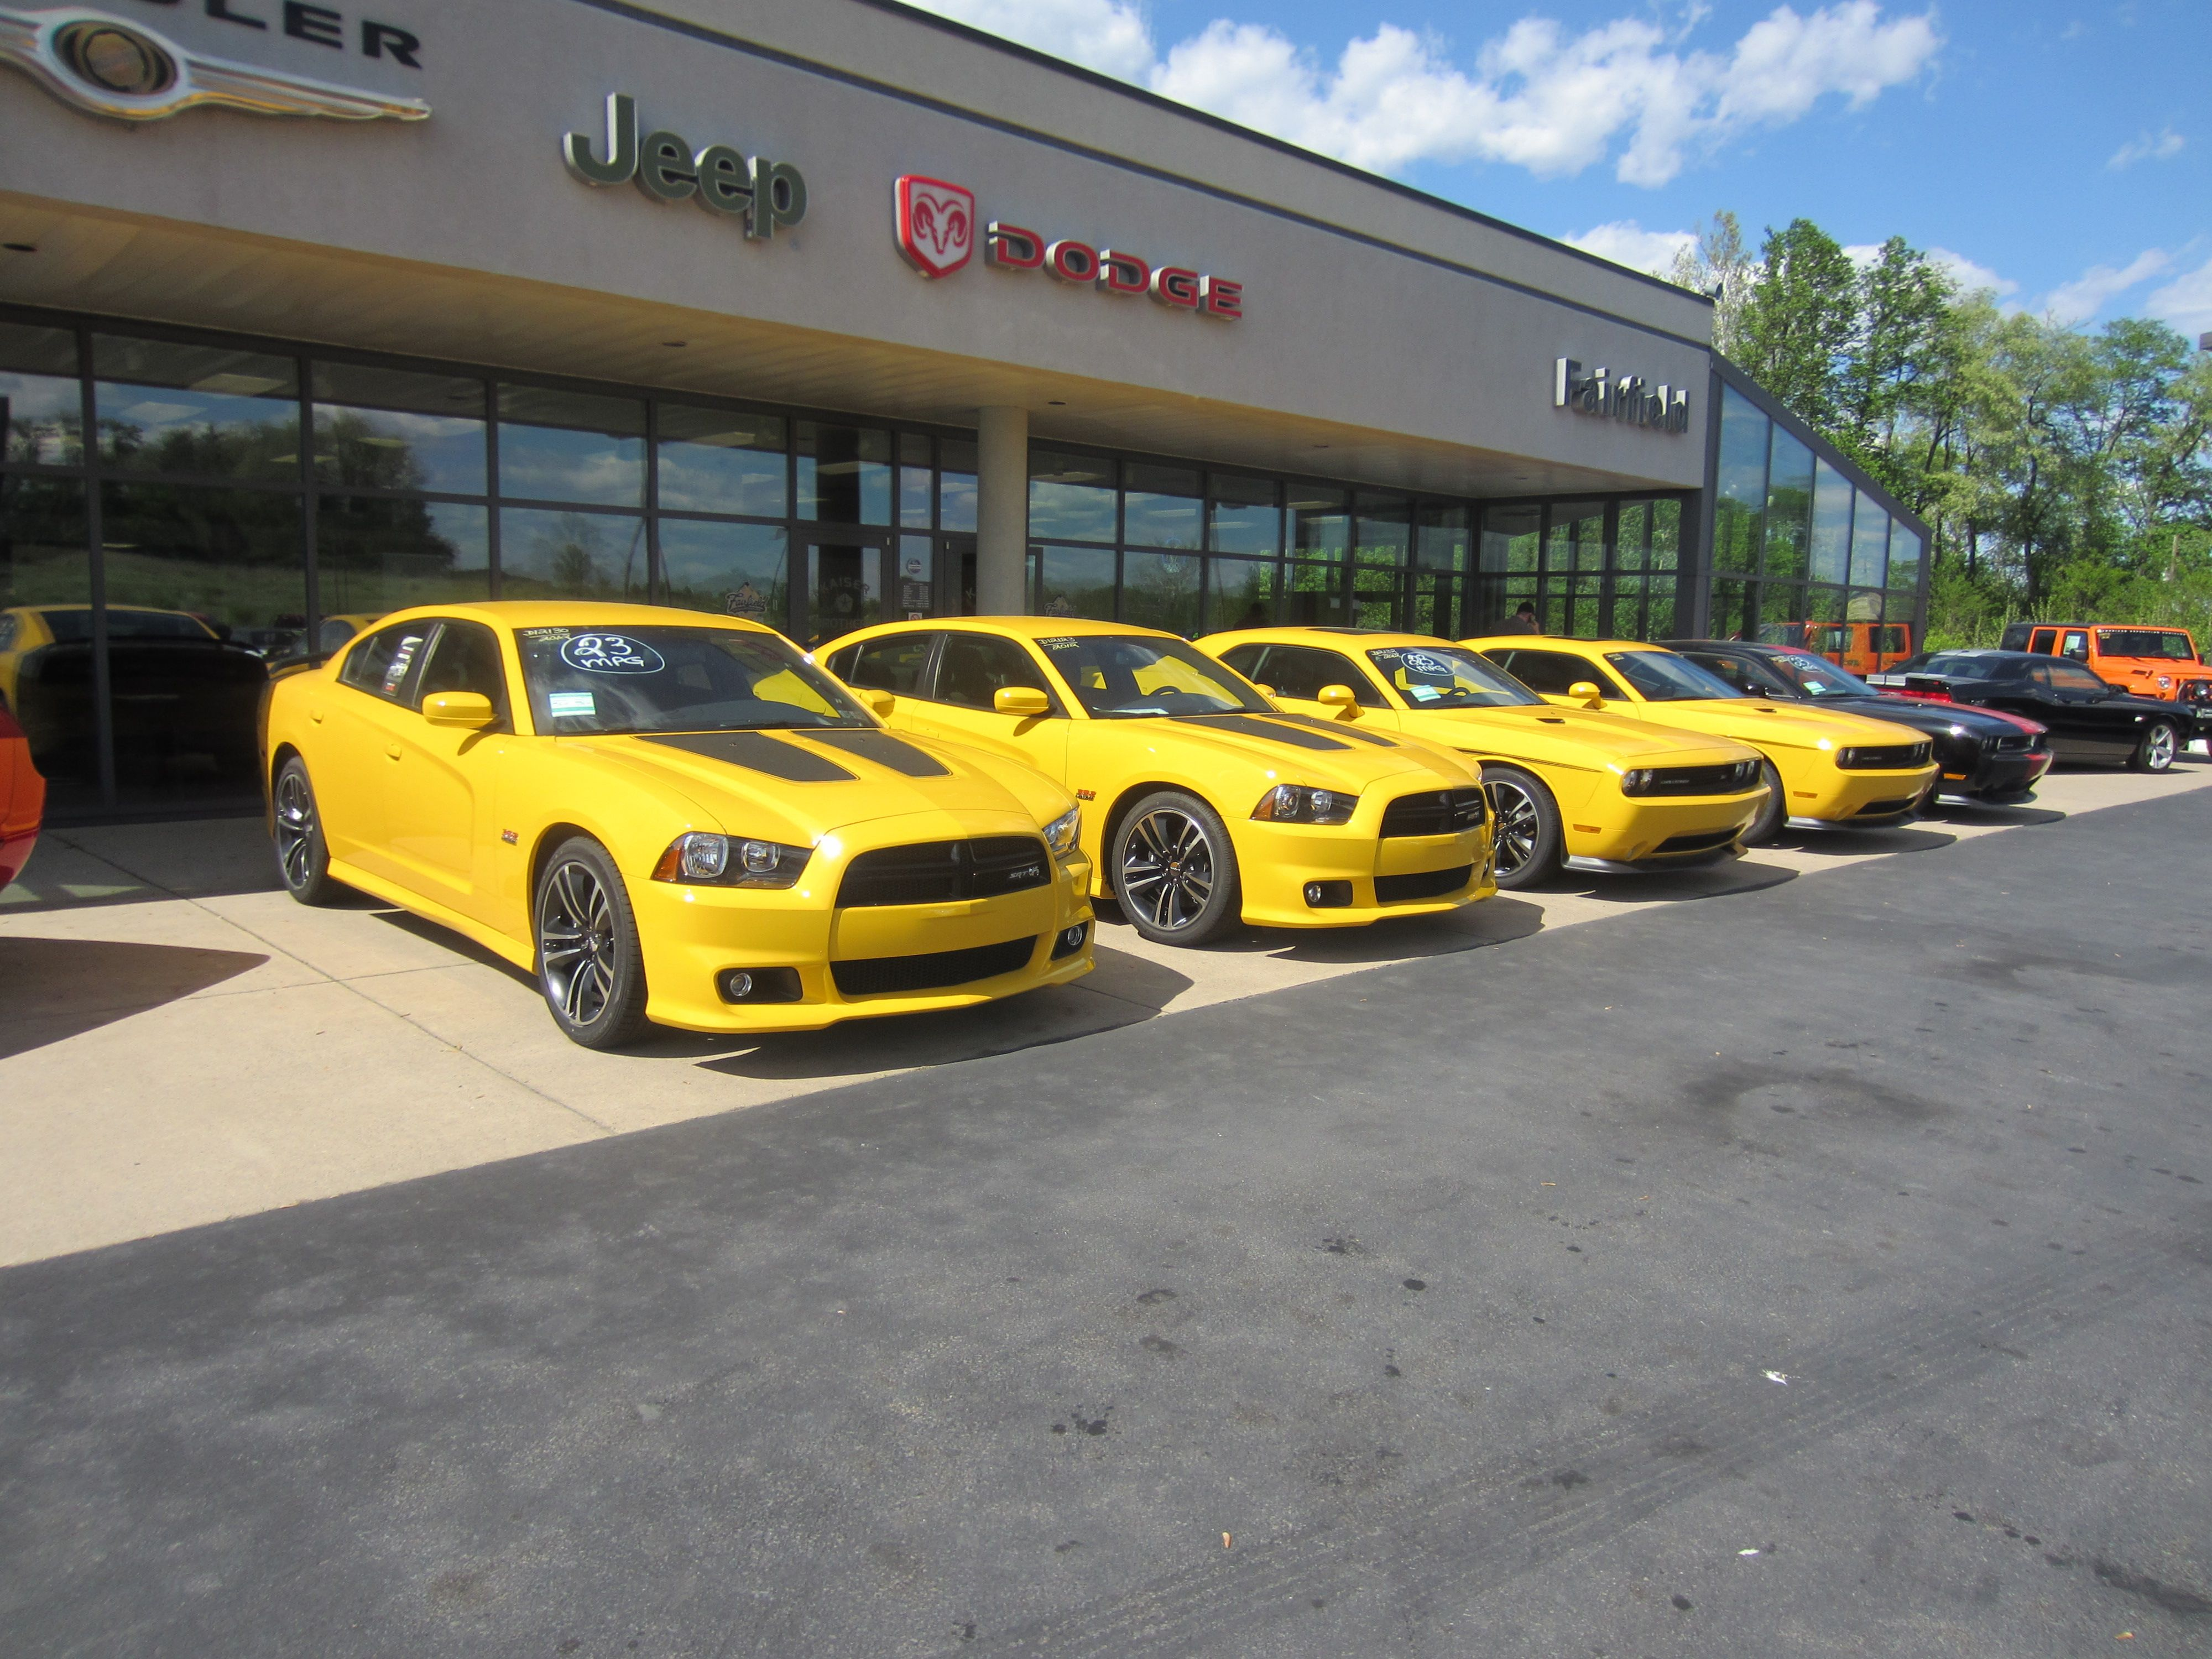 2 Chargers (bumble bees) and 2 Challengers (yellow jackets).